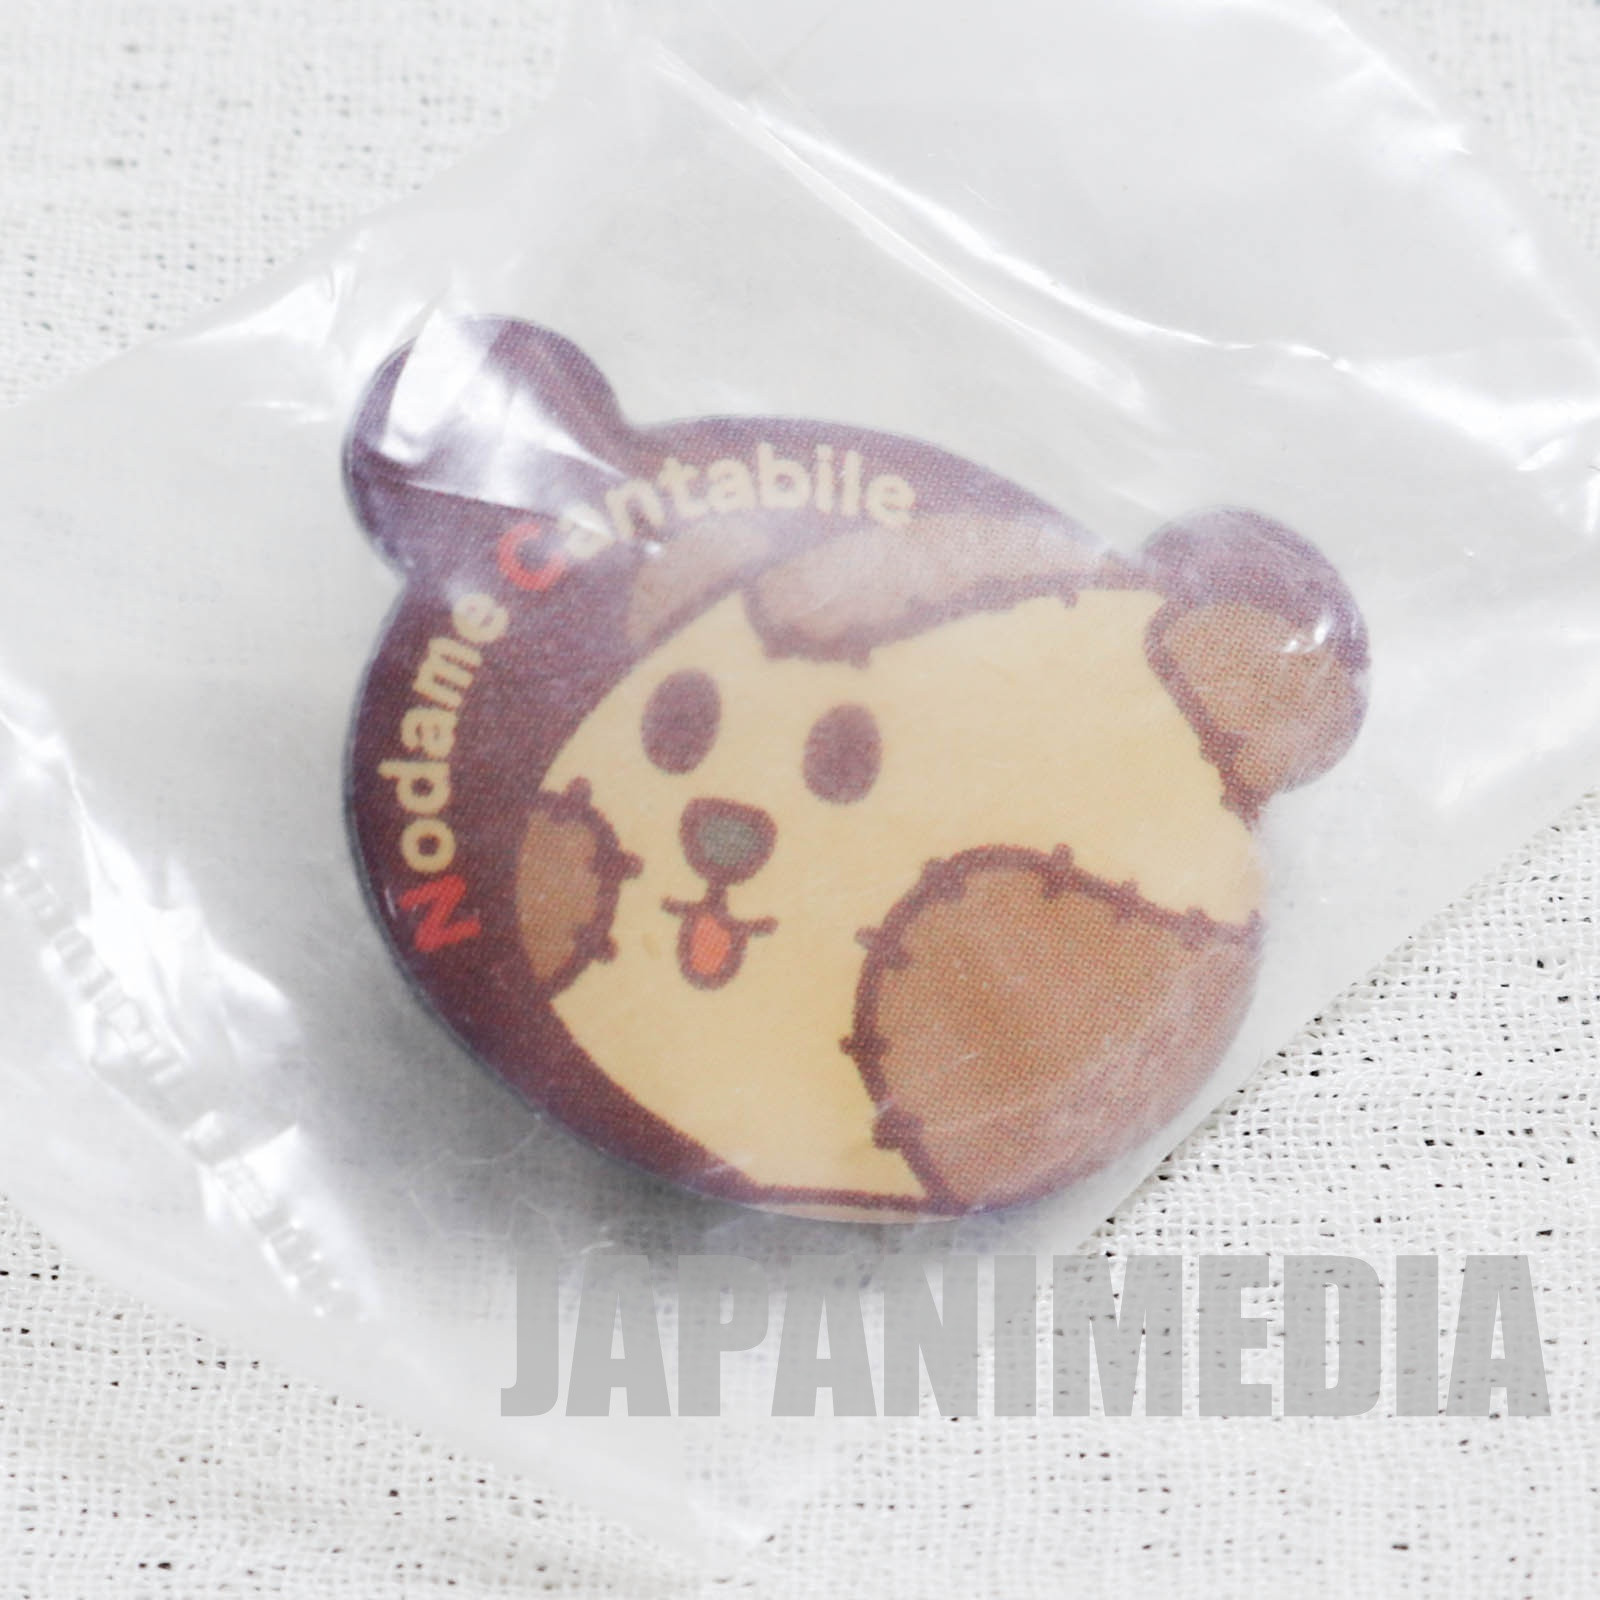 Nodame Cantabile Mongoose Gashapon Pins Collection JAPAN ANIME